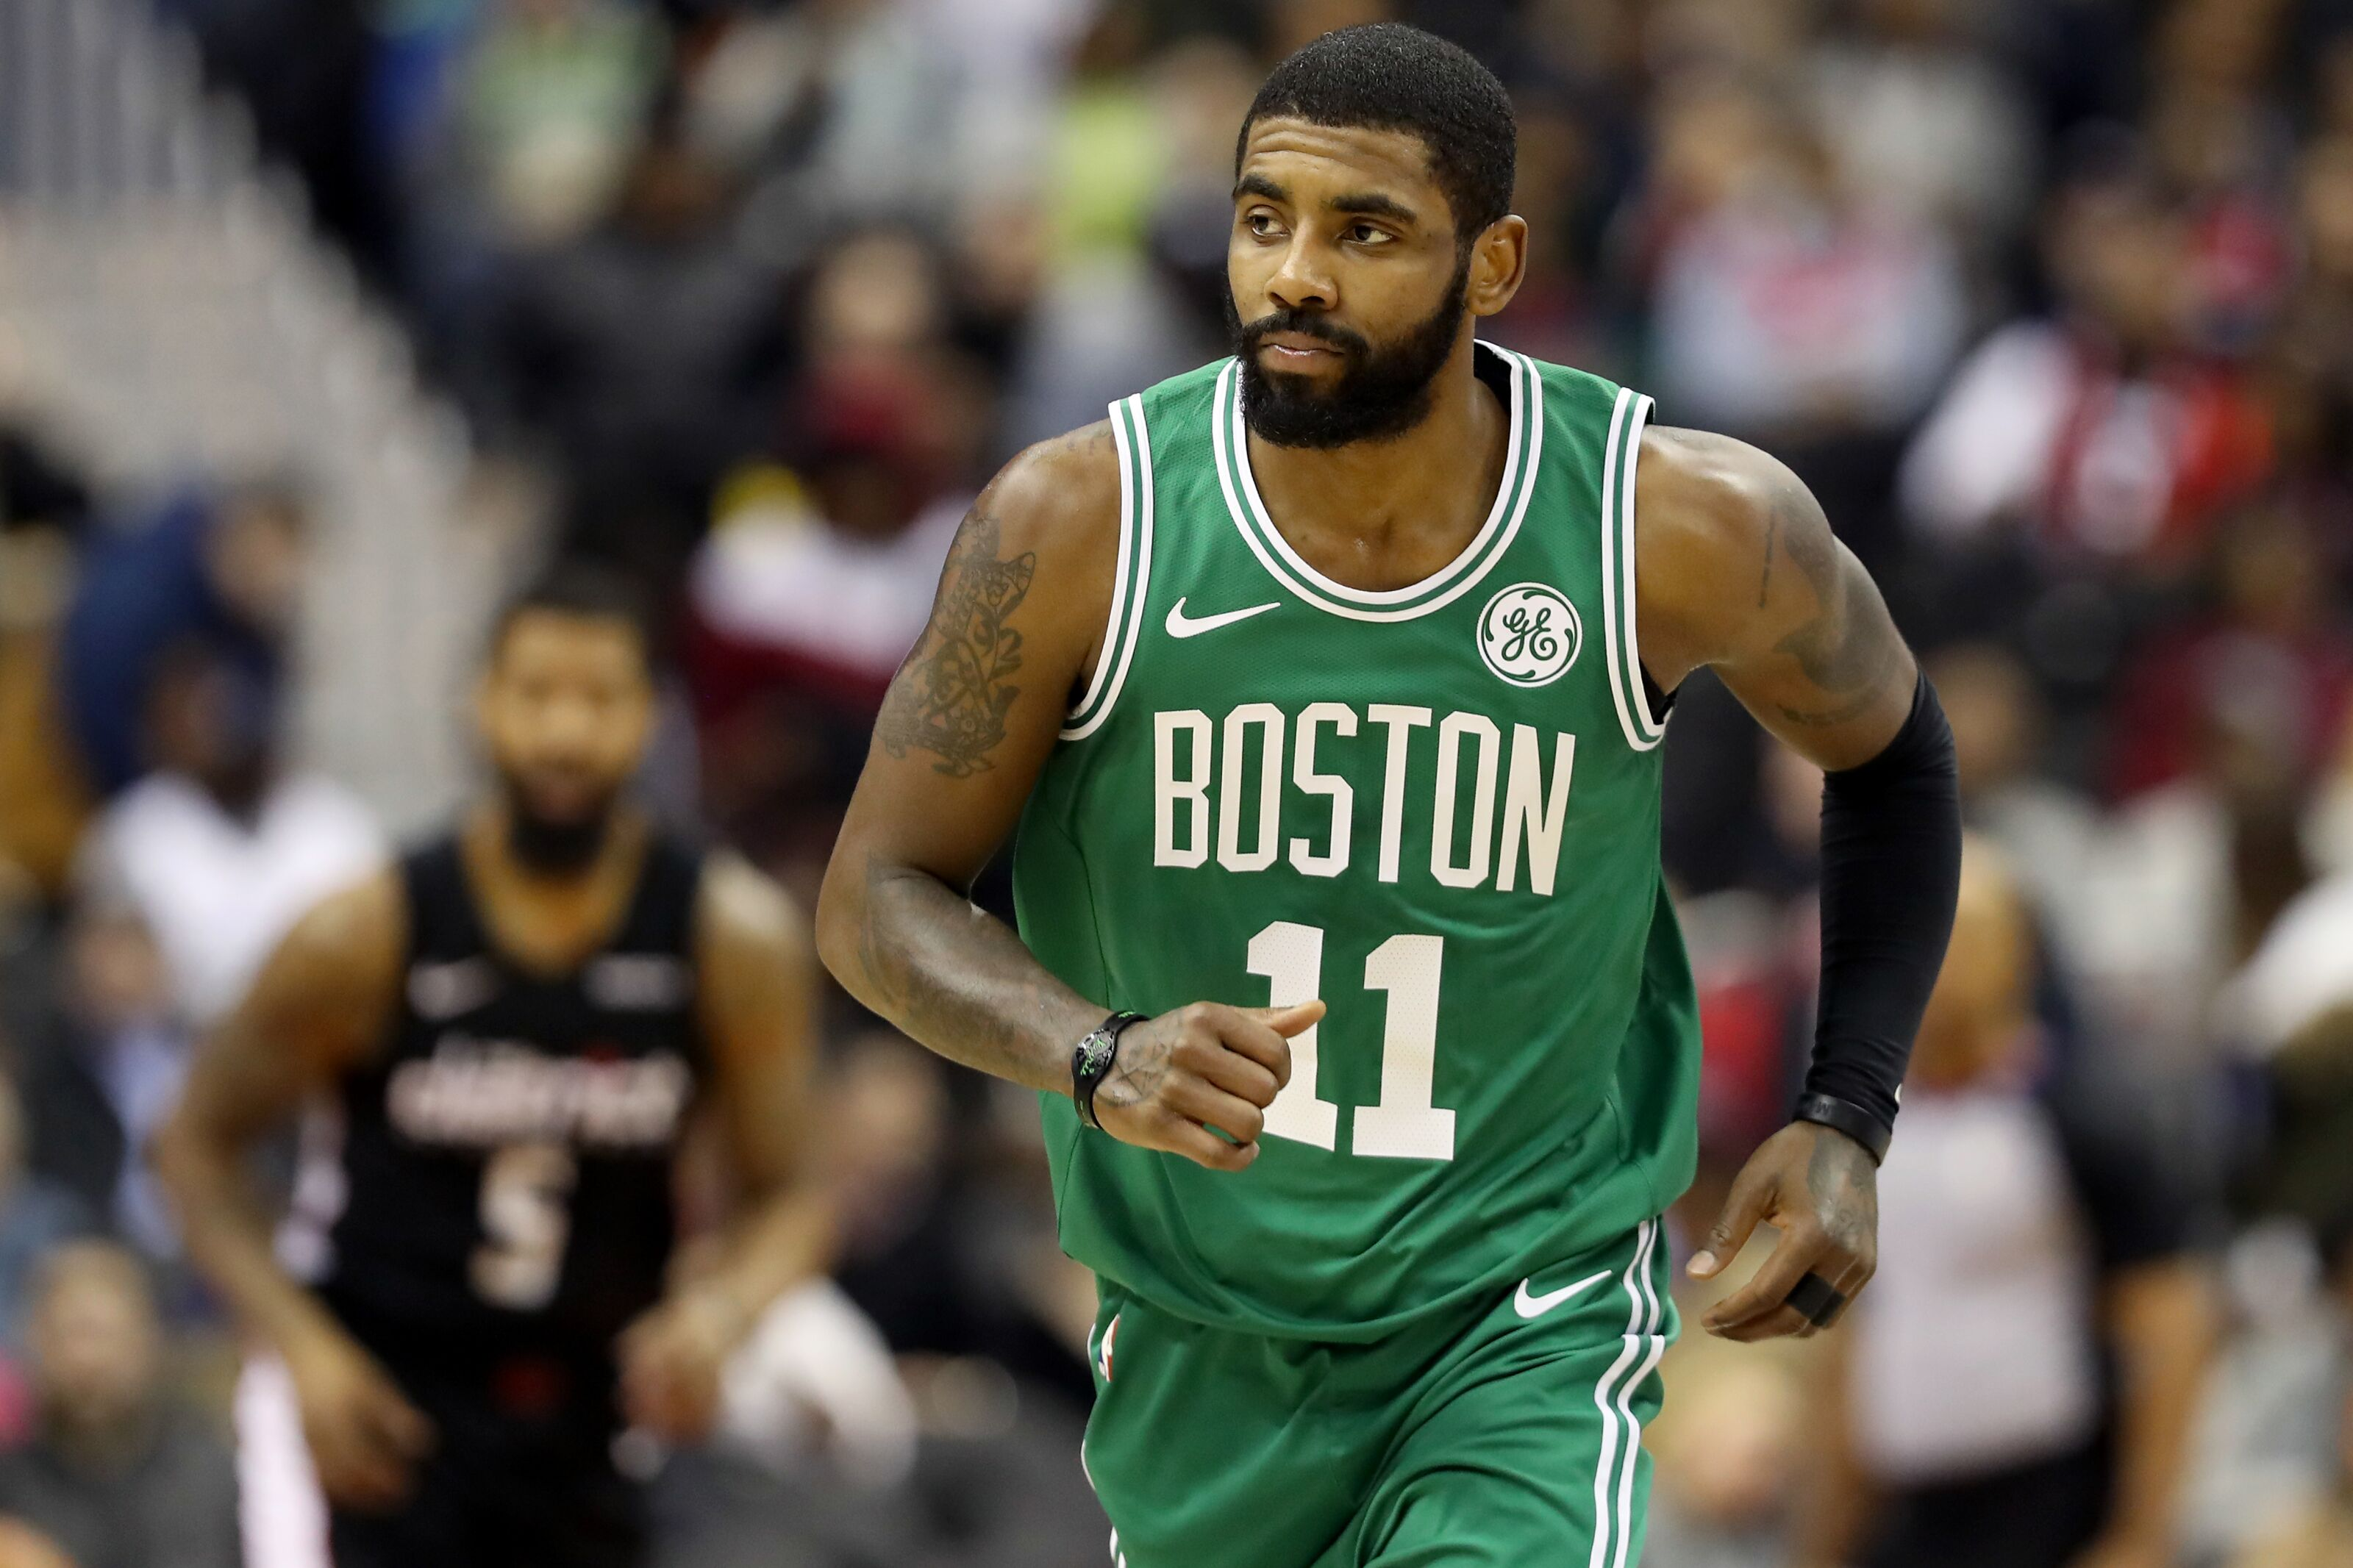 Duke Basketball: Kyrie Irving dazzles in return to Celtics lineup